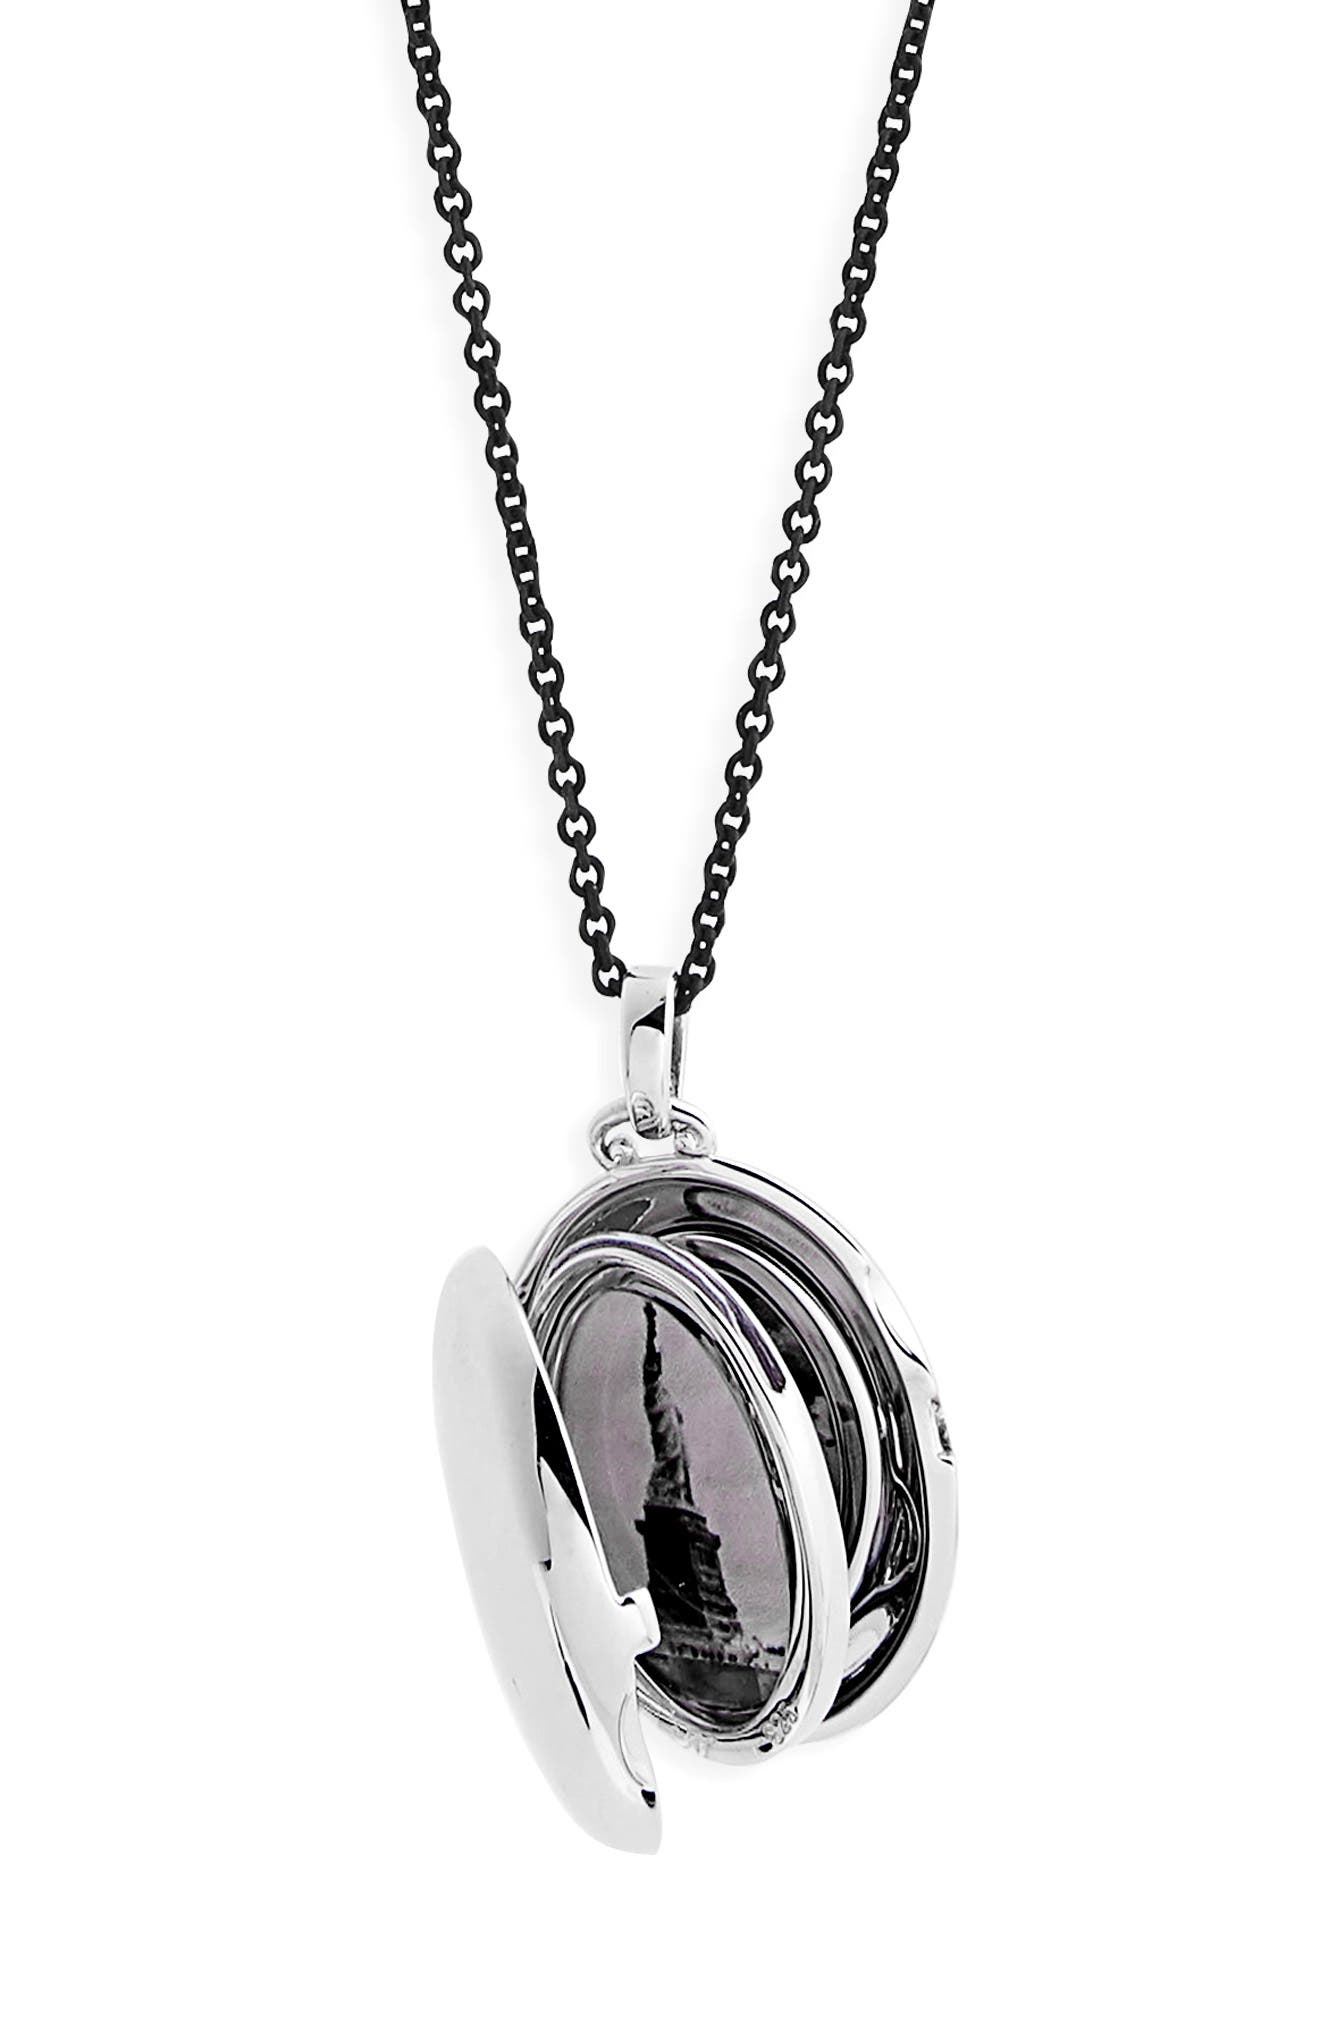 Four Image Mini Locket Necklace,                             Alternate thumbnail 3, color,                             STERLING SILVER/ BLACK STEEL